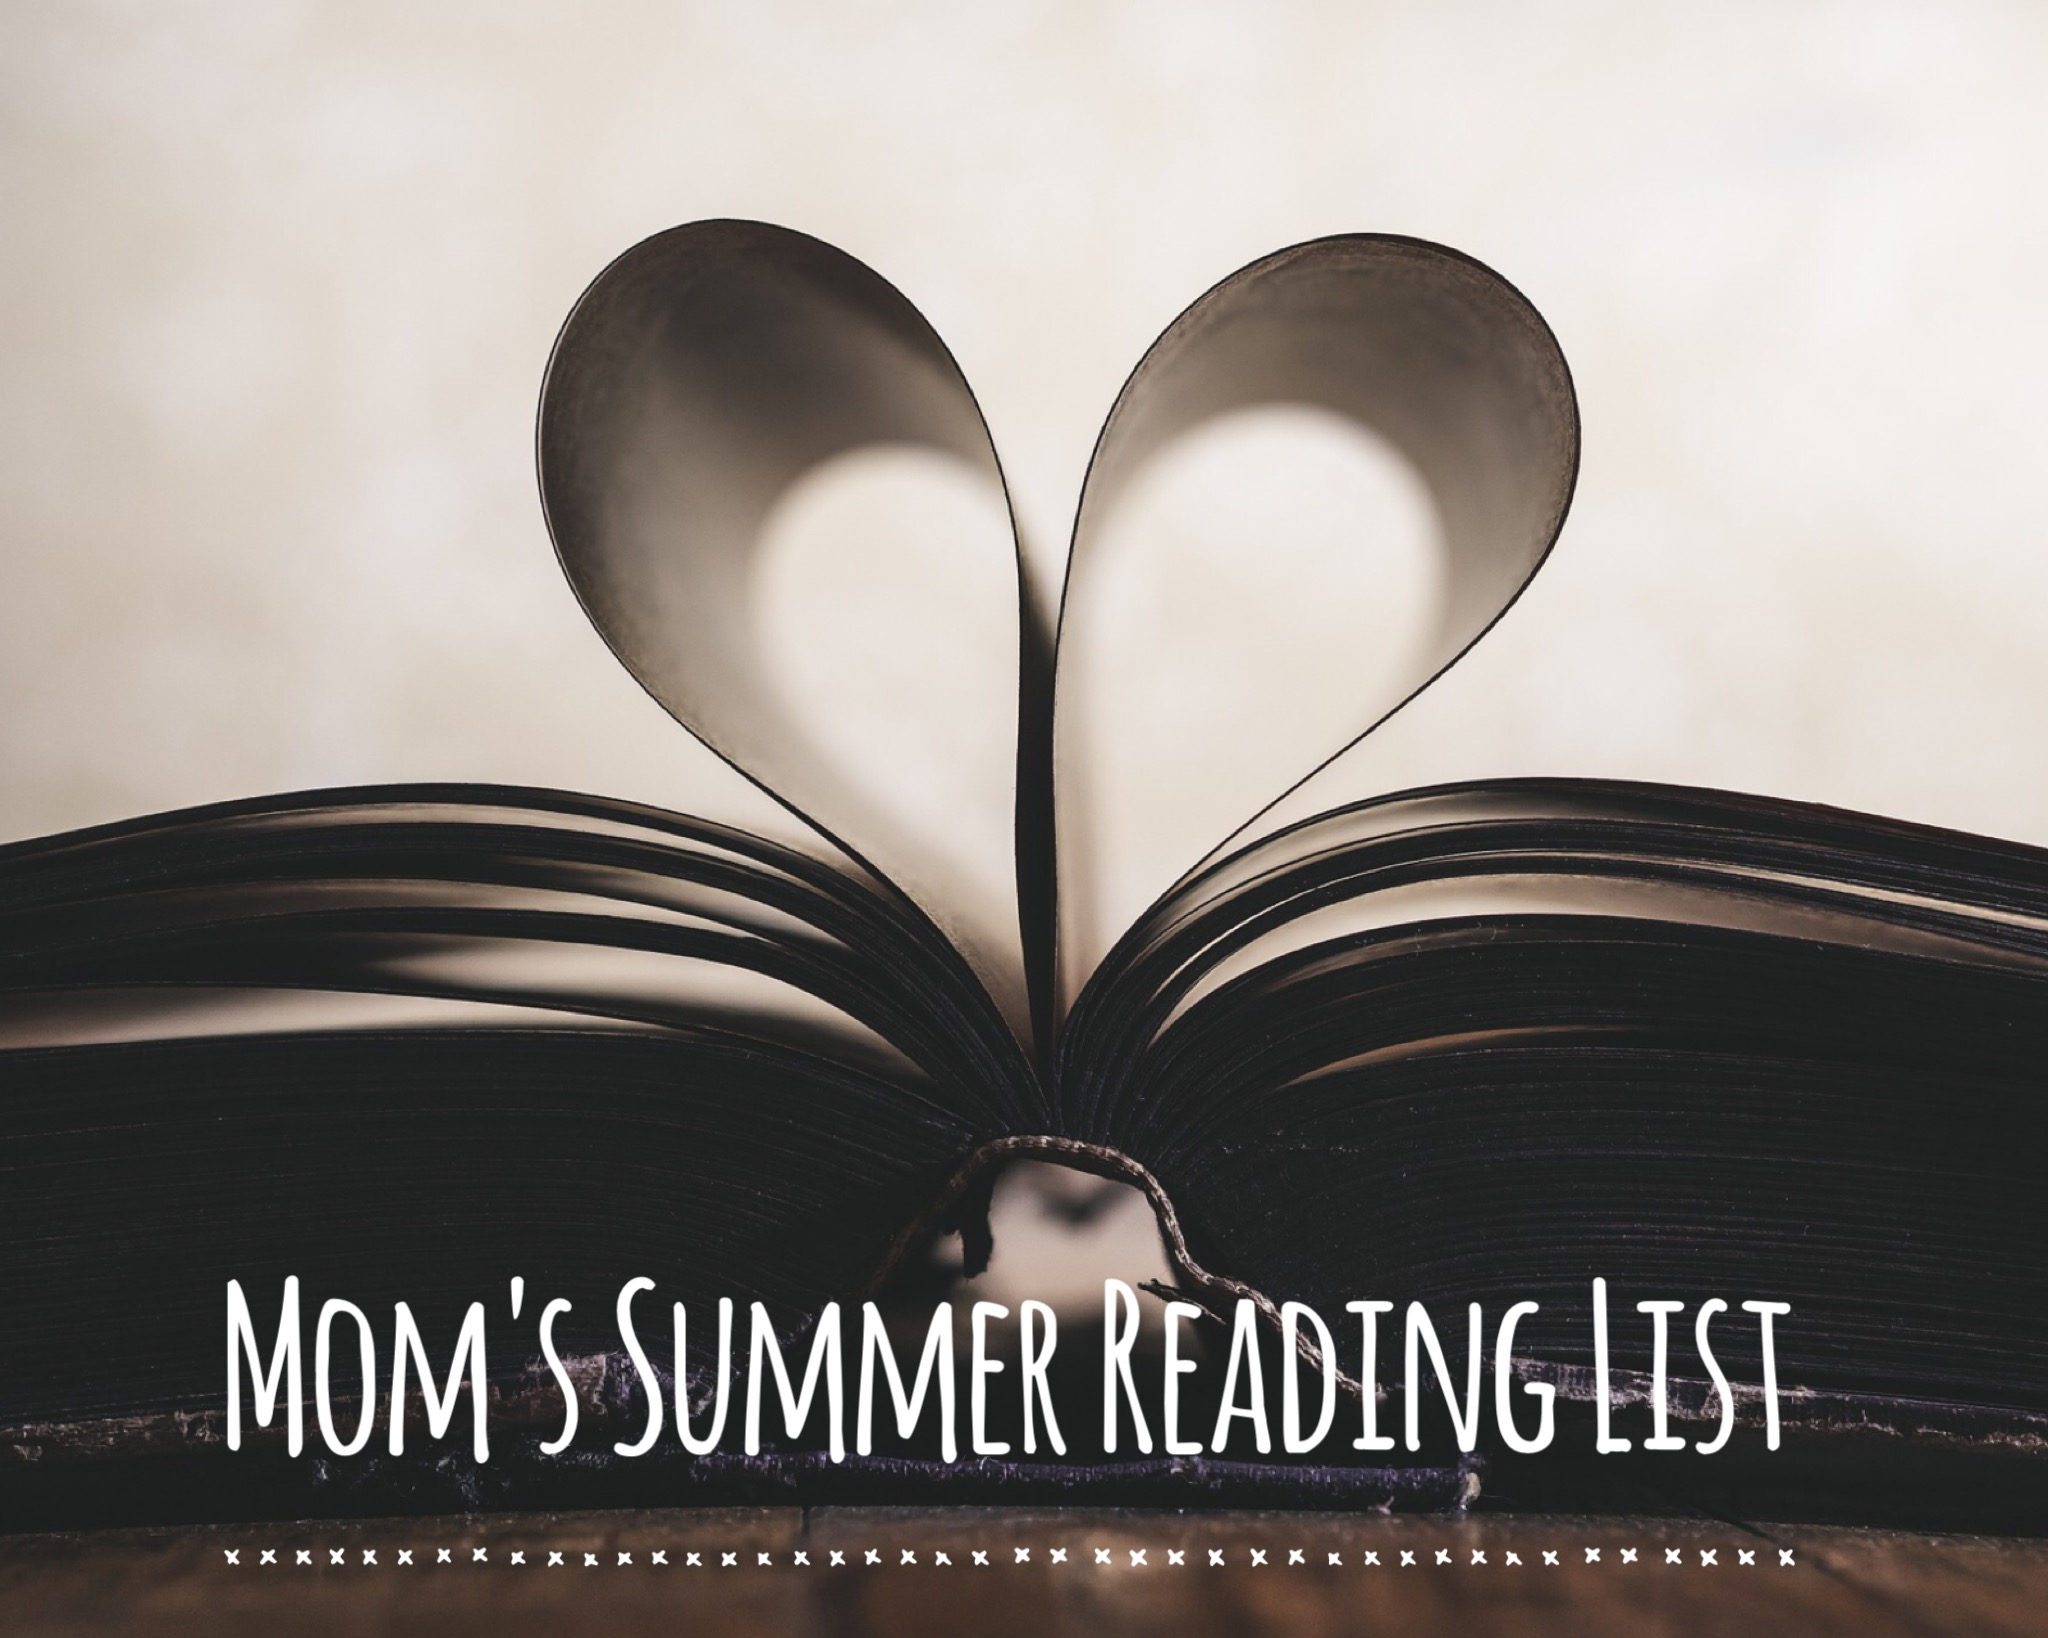 Mom's Summer Reading List